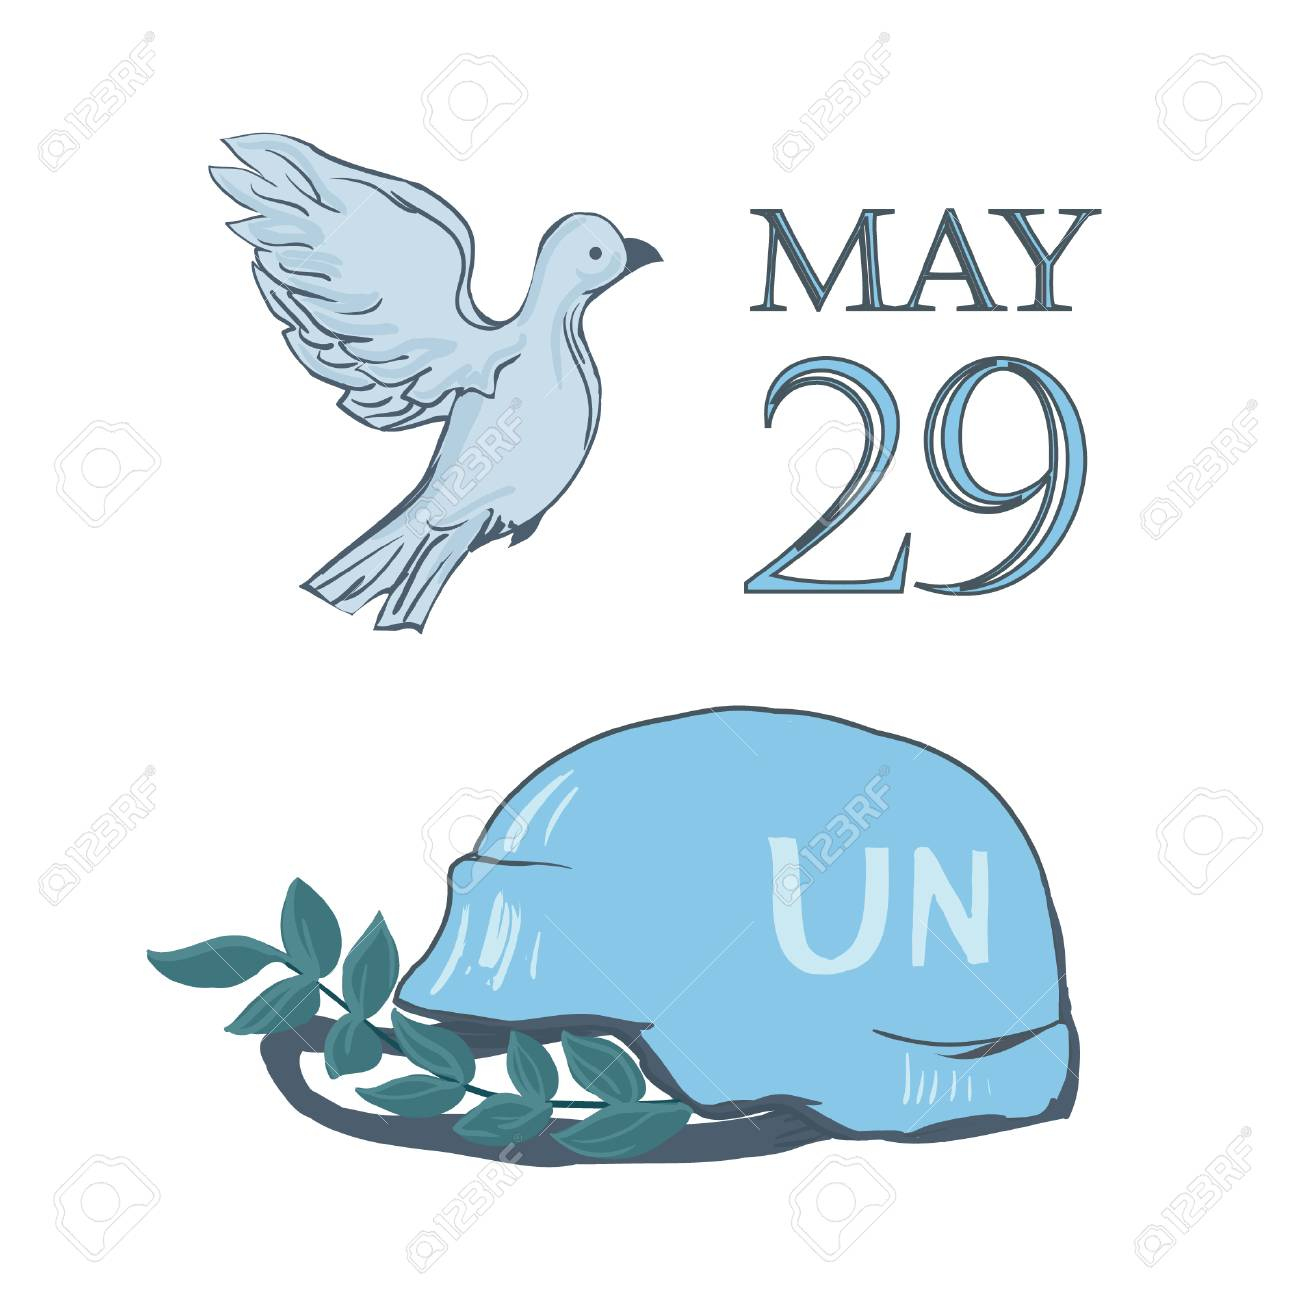 A postcard by May 29 is the international day of the United Nations of peacekeepers. Flying dove of peace, blue helmet of military defender and branch - isolated on white background. - 103669312